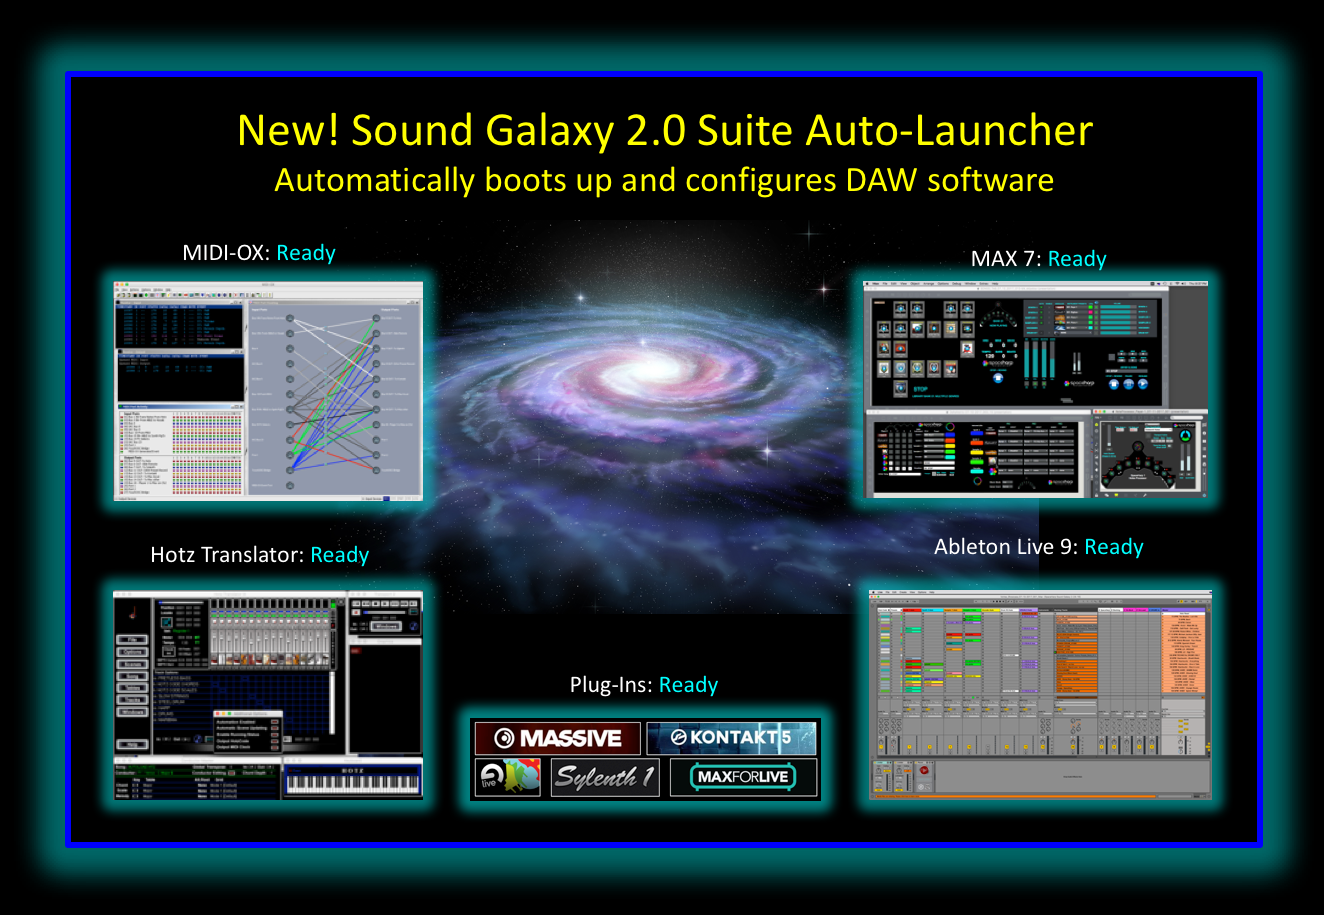 With a few mouse clicks, a Sound Galaxy 2.0 user can automatically go from a cold power-up of the DAW computer to live command of the system for a stage performance, a guest-interactive experience, or a multi-player theme park attraction.